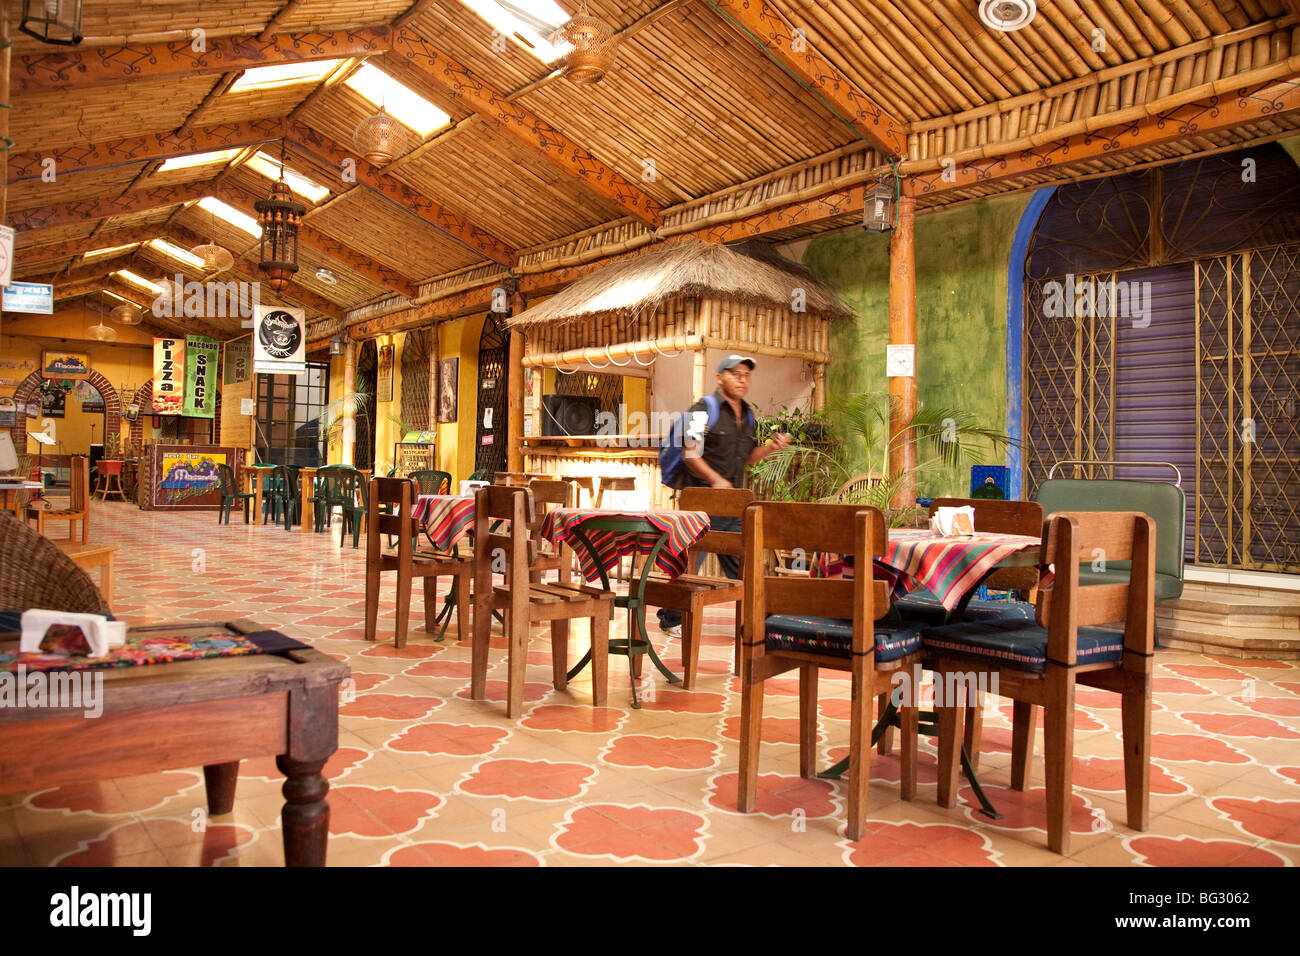 Cafe La Parada in the Centro Dorado next to Calle Santander Panajachel Lake Atitlan Guatemala. - Stock Image